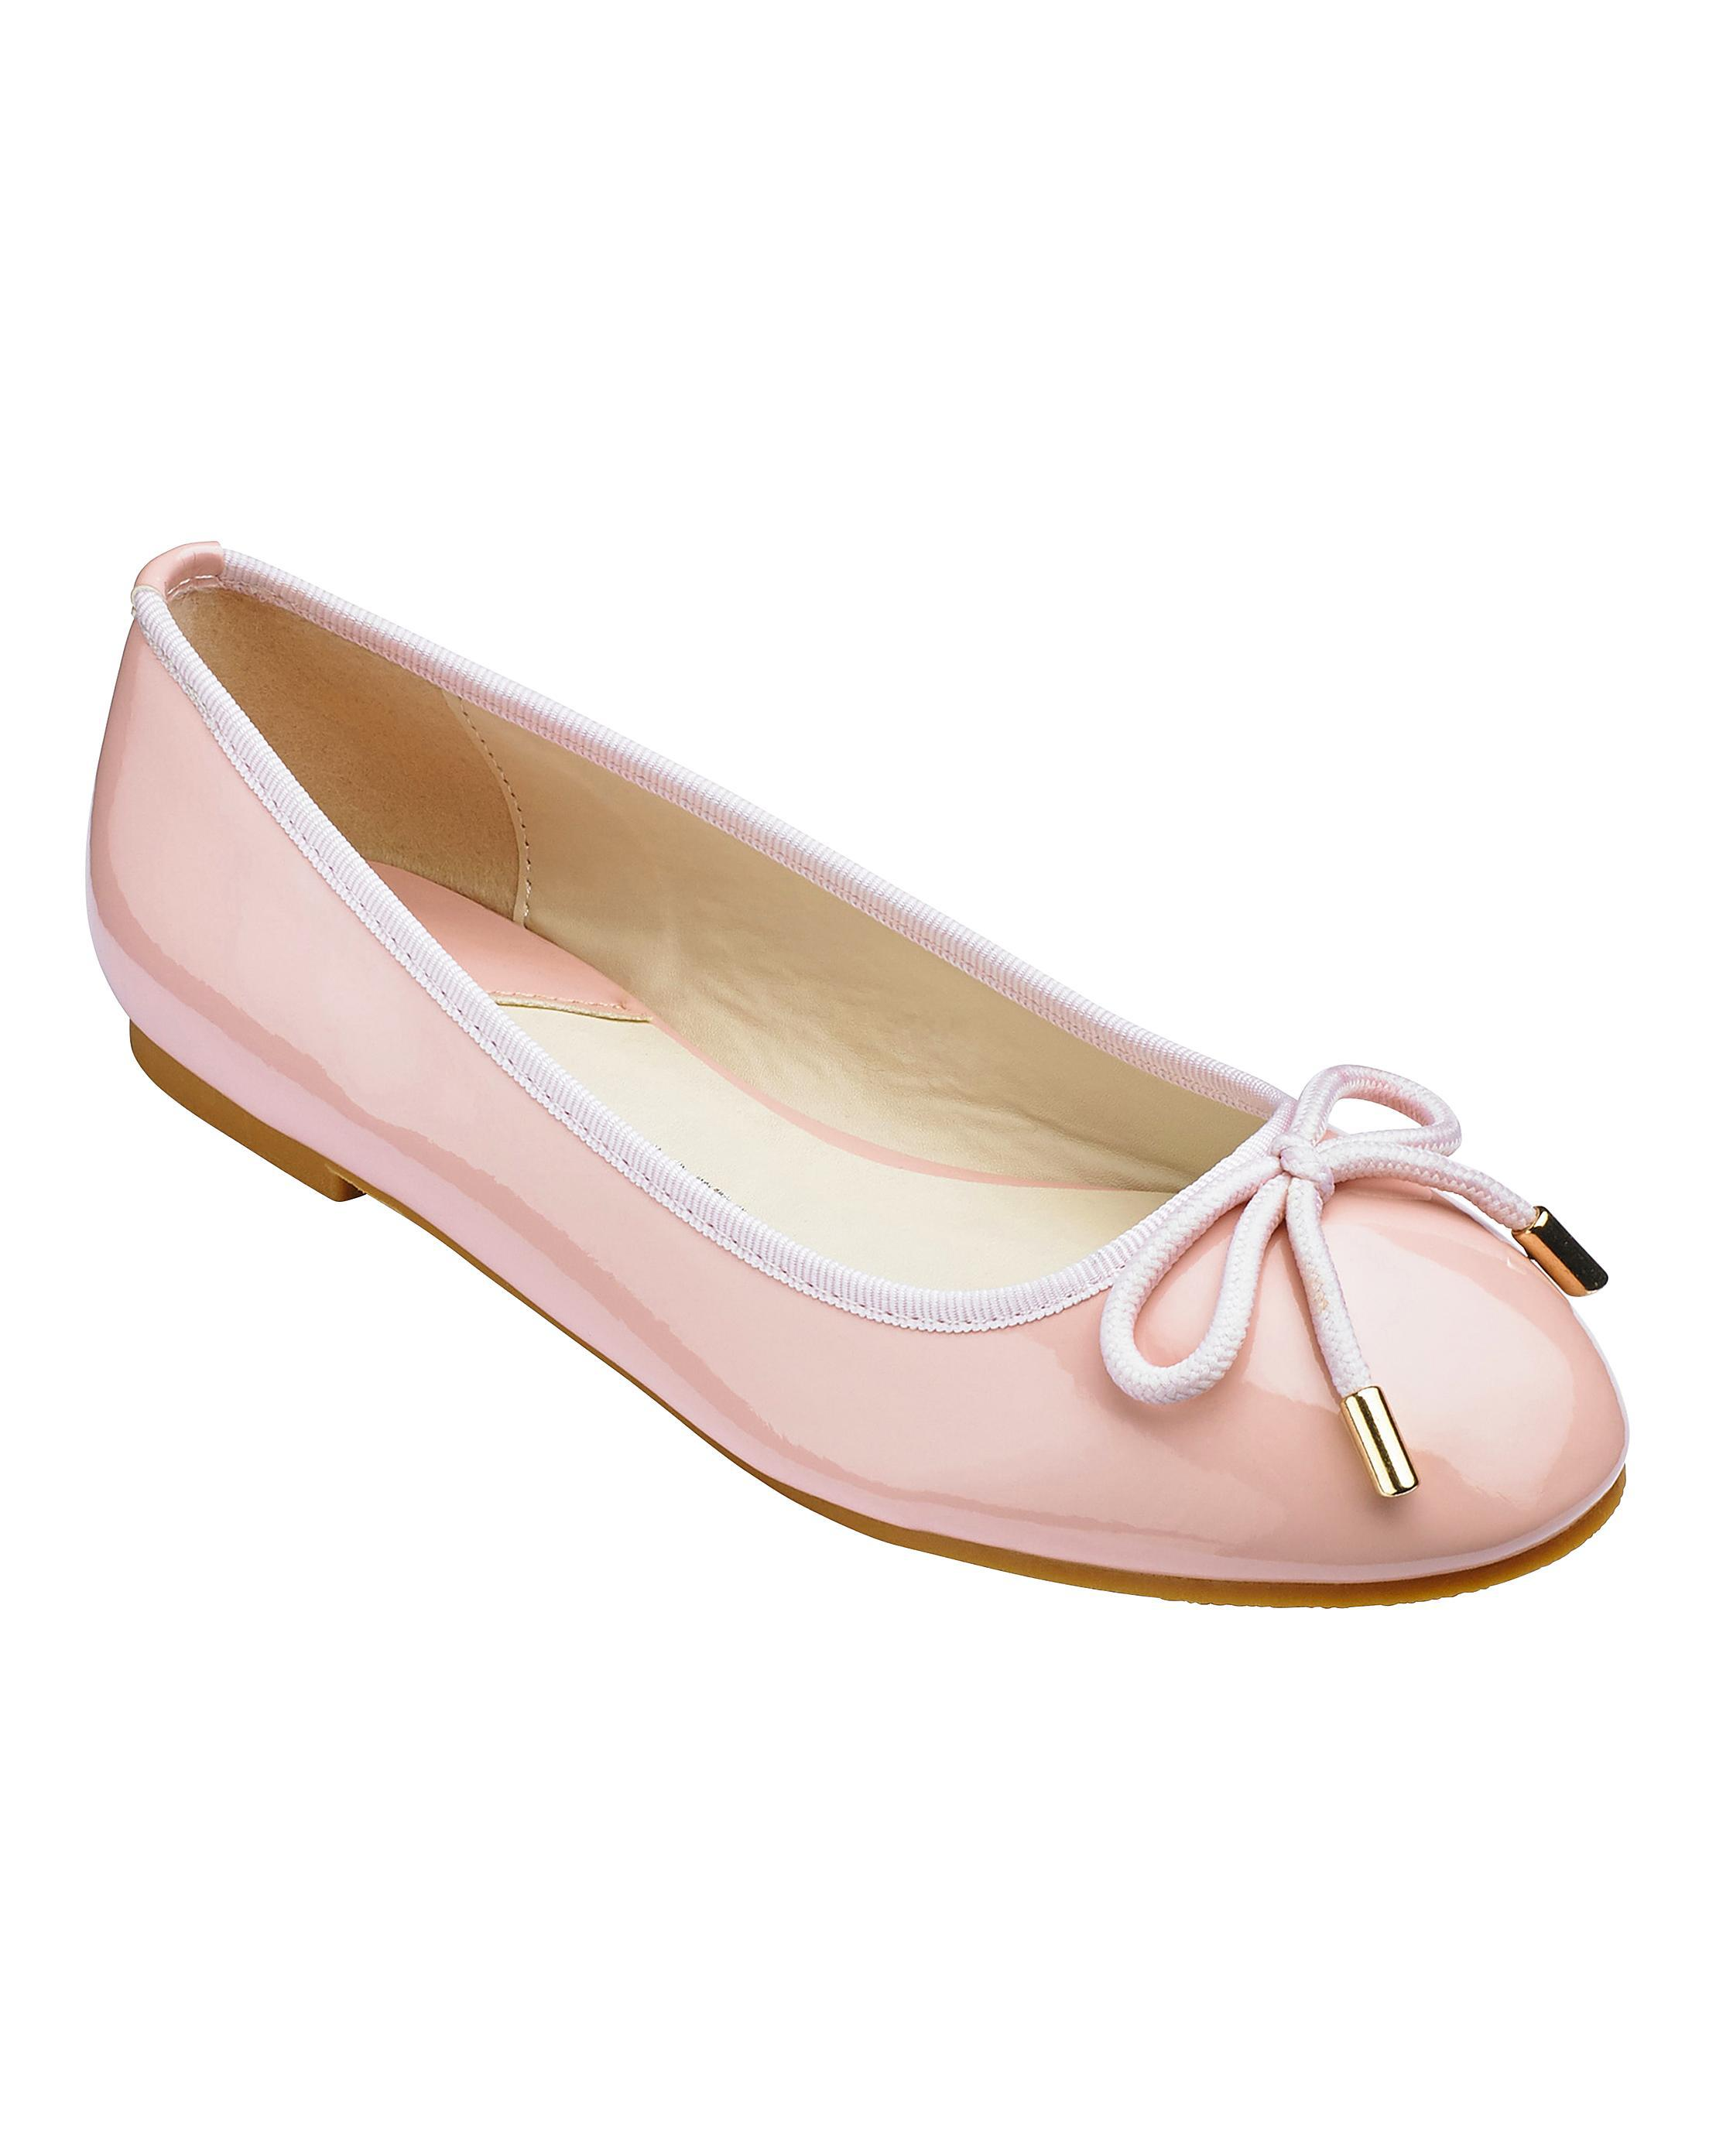 low shipping really for sale Heavenly Soles Ballet Flats MgdkDg7G